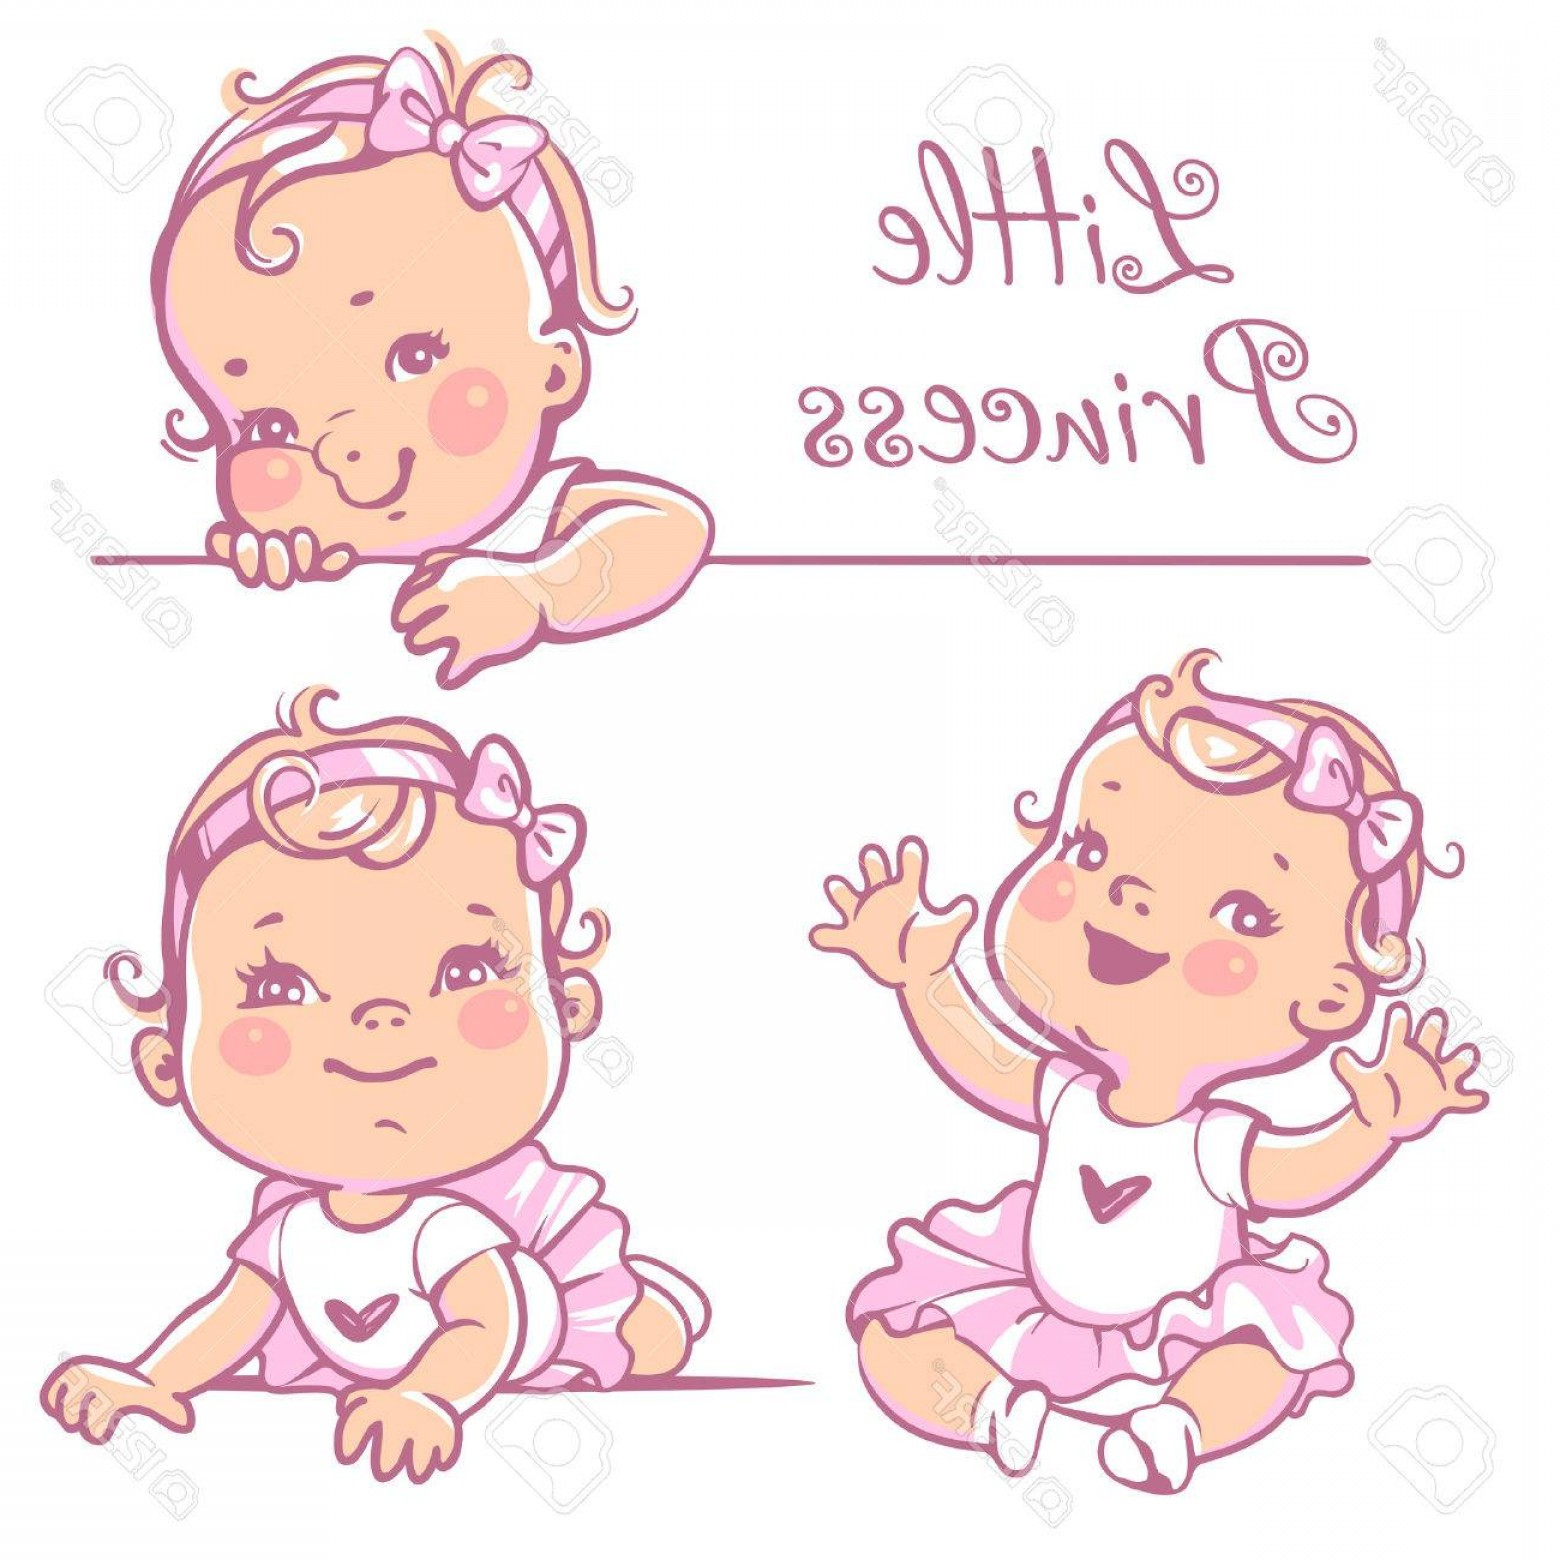 1560x1560 Photostock Vector Set With Cute Little Baby Girl With Curly Hair